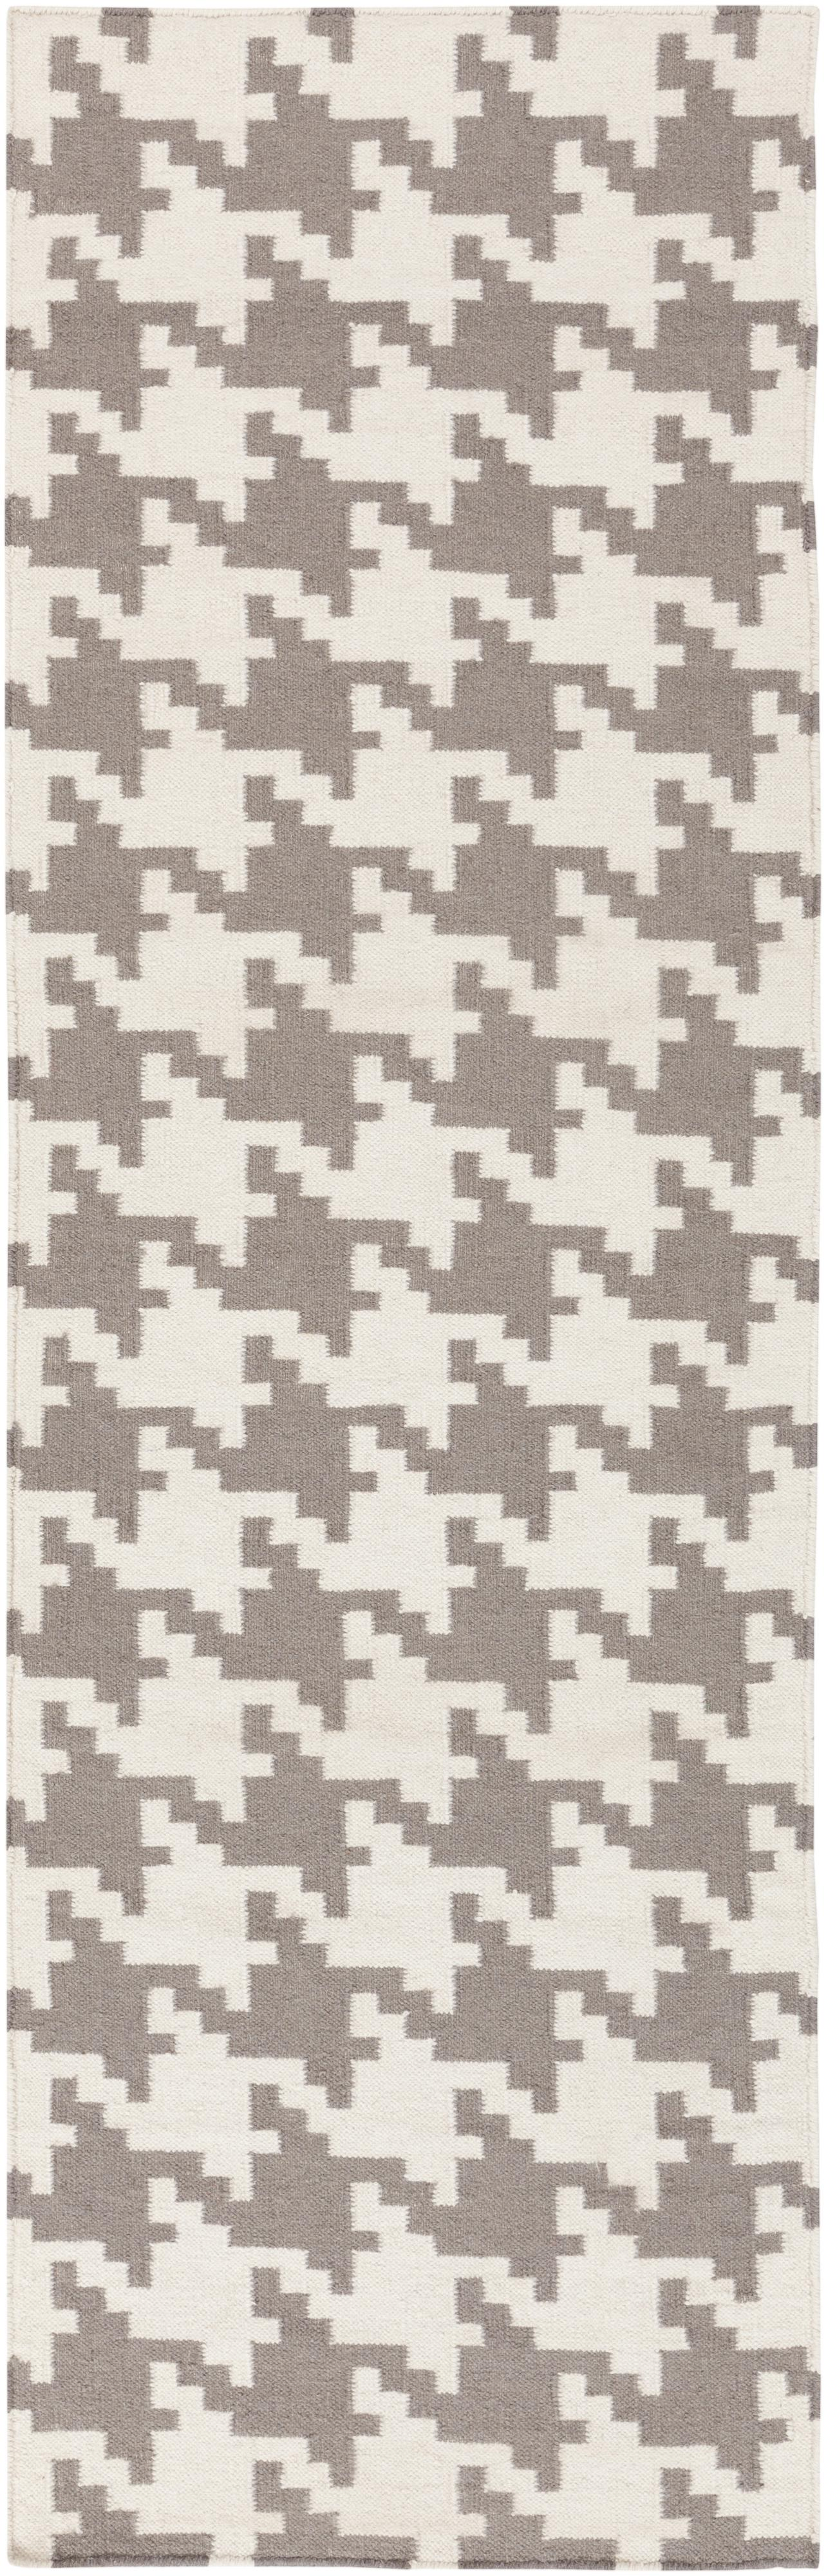 "Surya Rugs Frontier 2'6"" x 8' - Item Number: FT106-268"